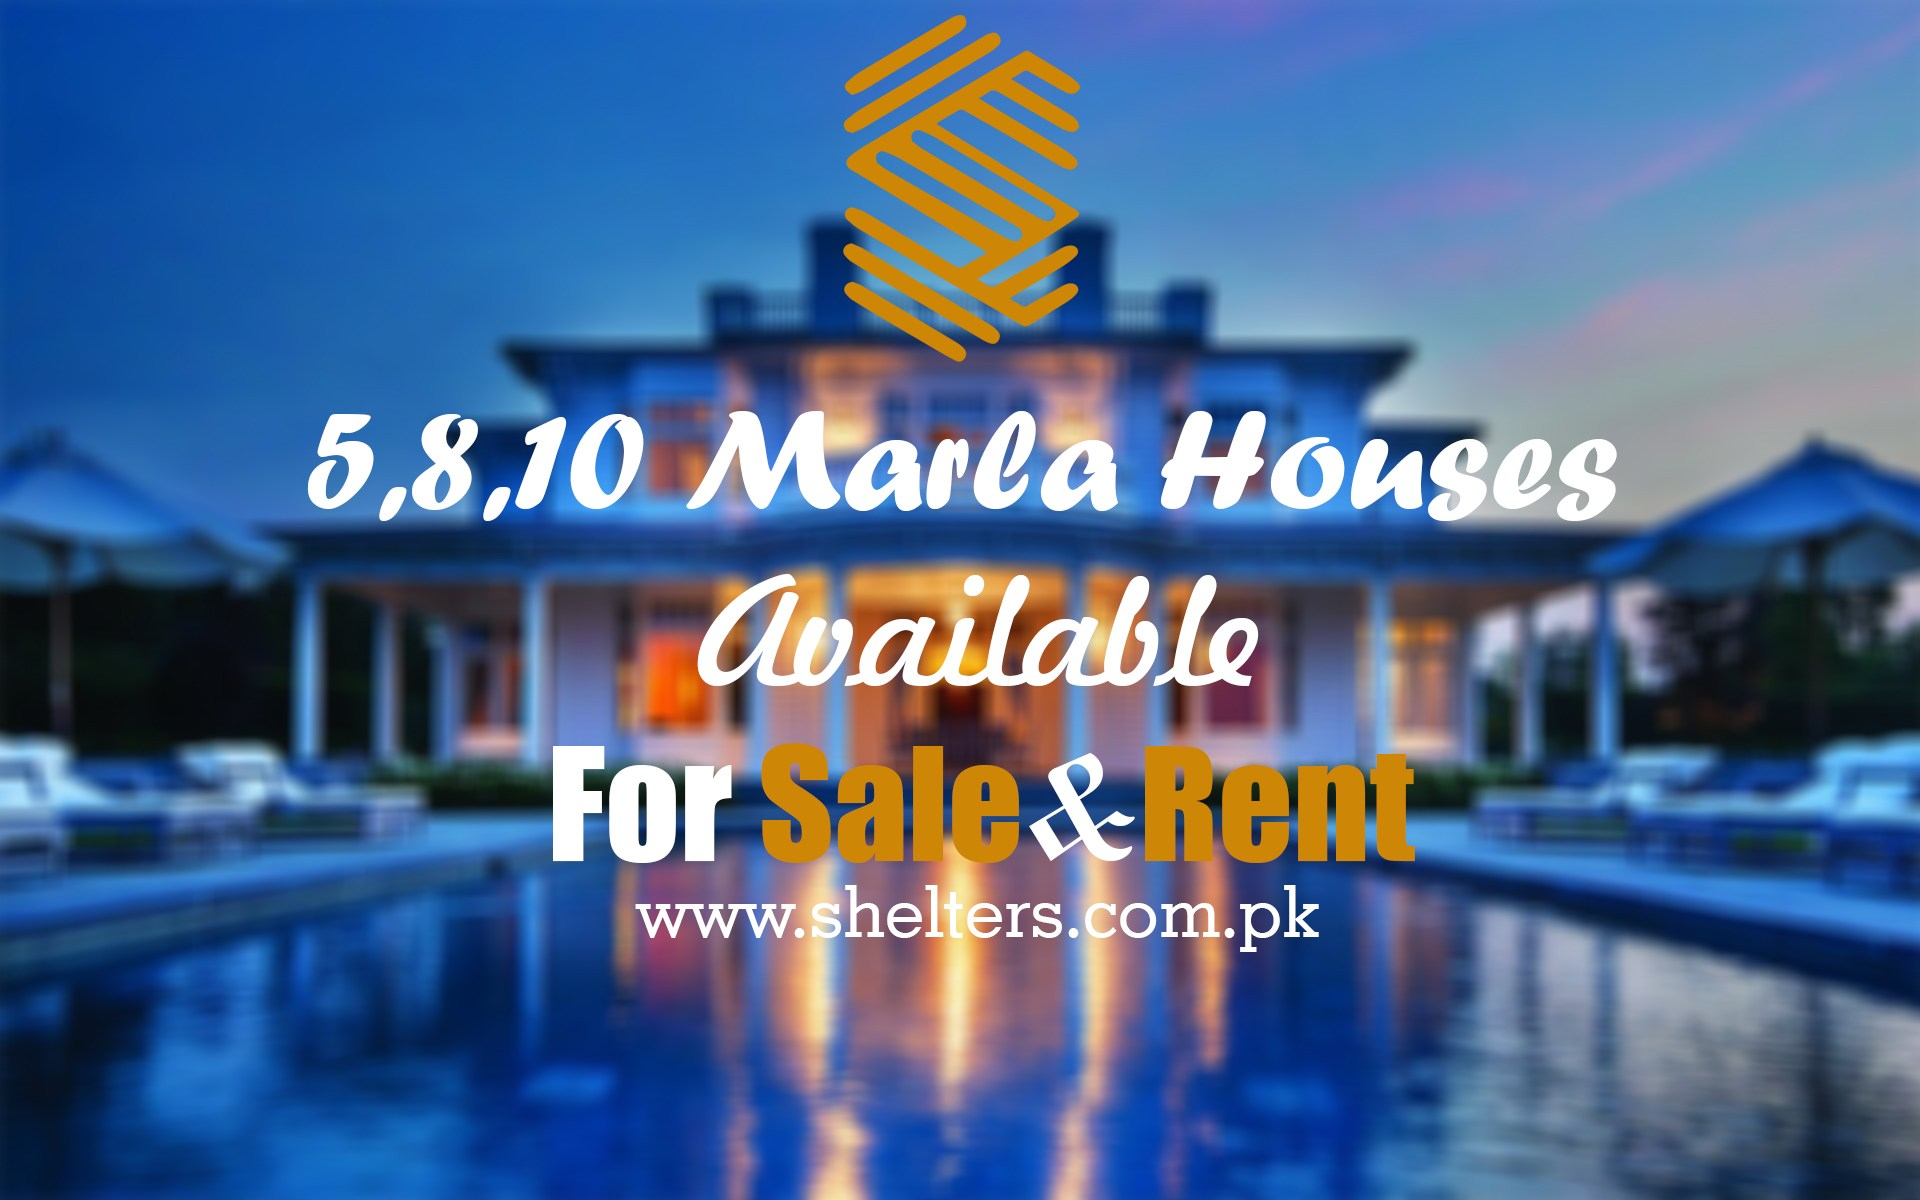 Best Chance For Investment Shops Offices 1.2.3 Bed Apartments Bahria Enclave Islamabad